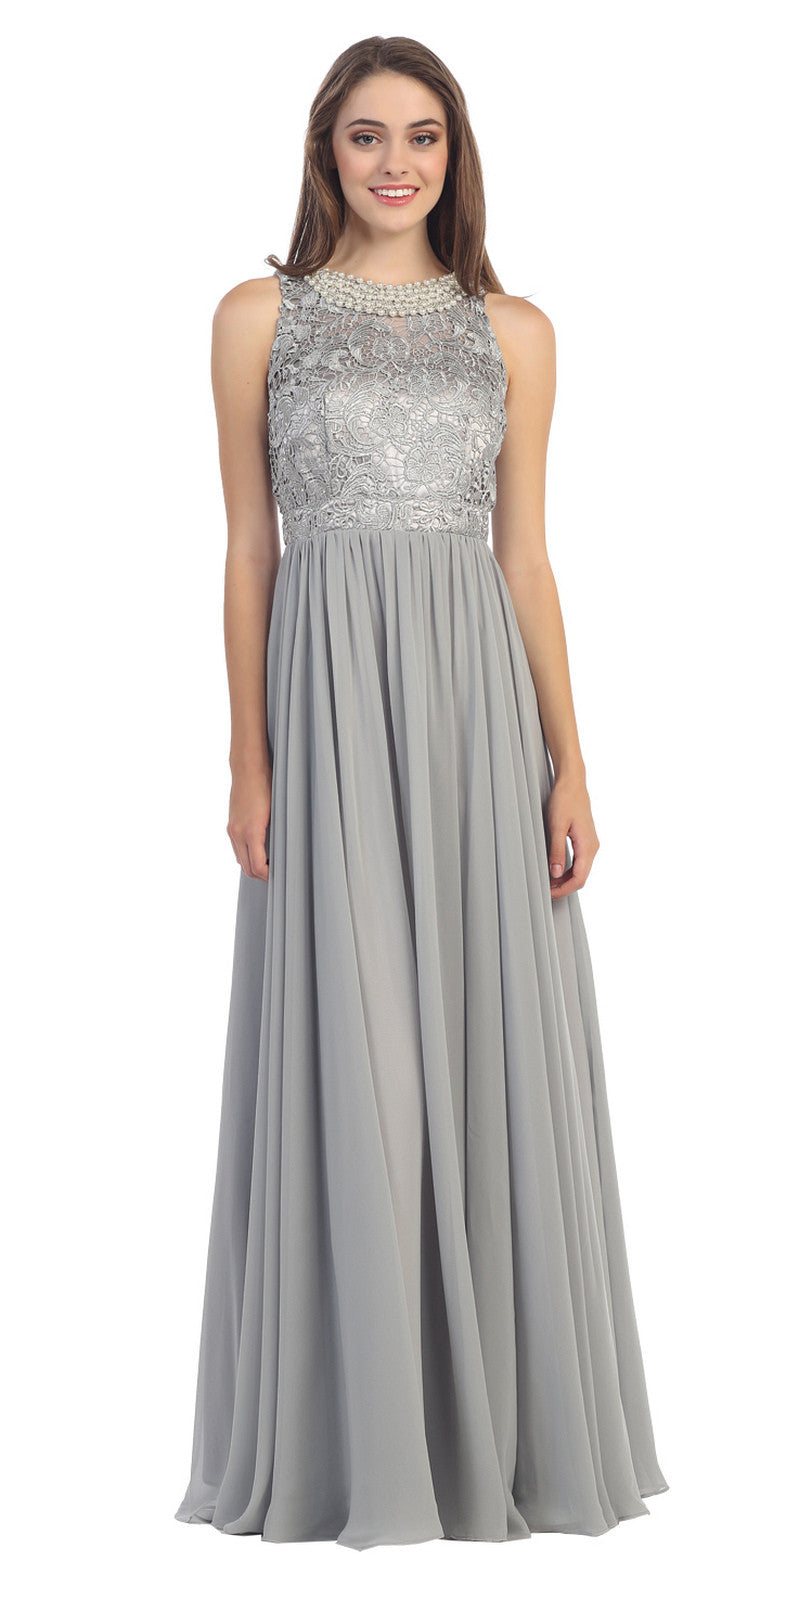 f22297d9951 Empire Waist Chiffon Evening Gown Silver A Line Full Length. Tap to expand